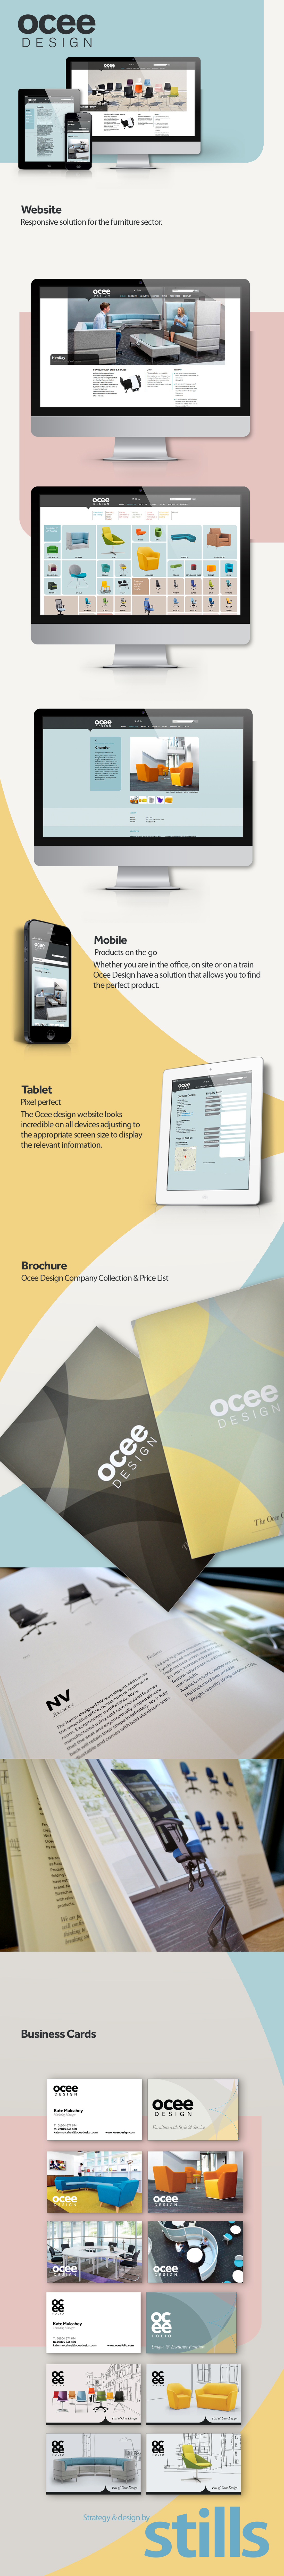 A bespoke solution for oceedesign brand strategy brand blueprint brand strategy brand blueprint responsive website malvernweather Choice Image